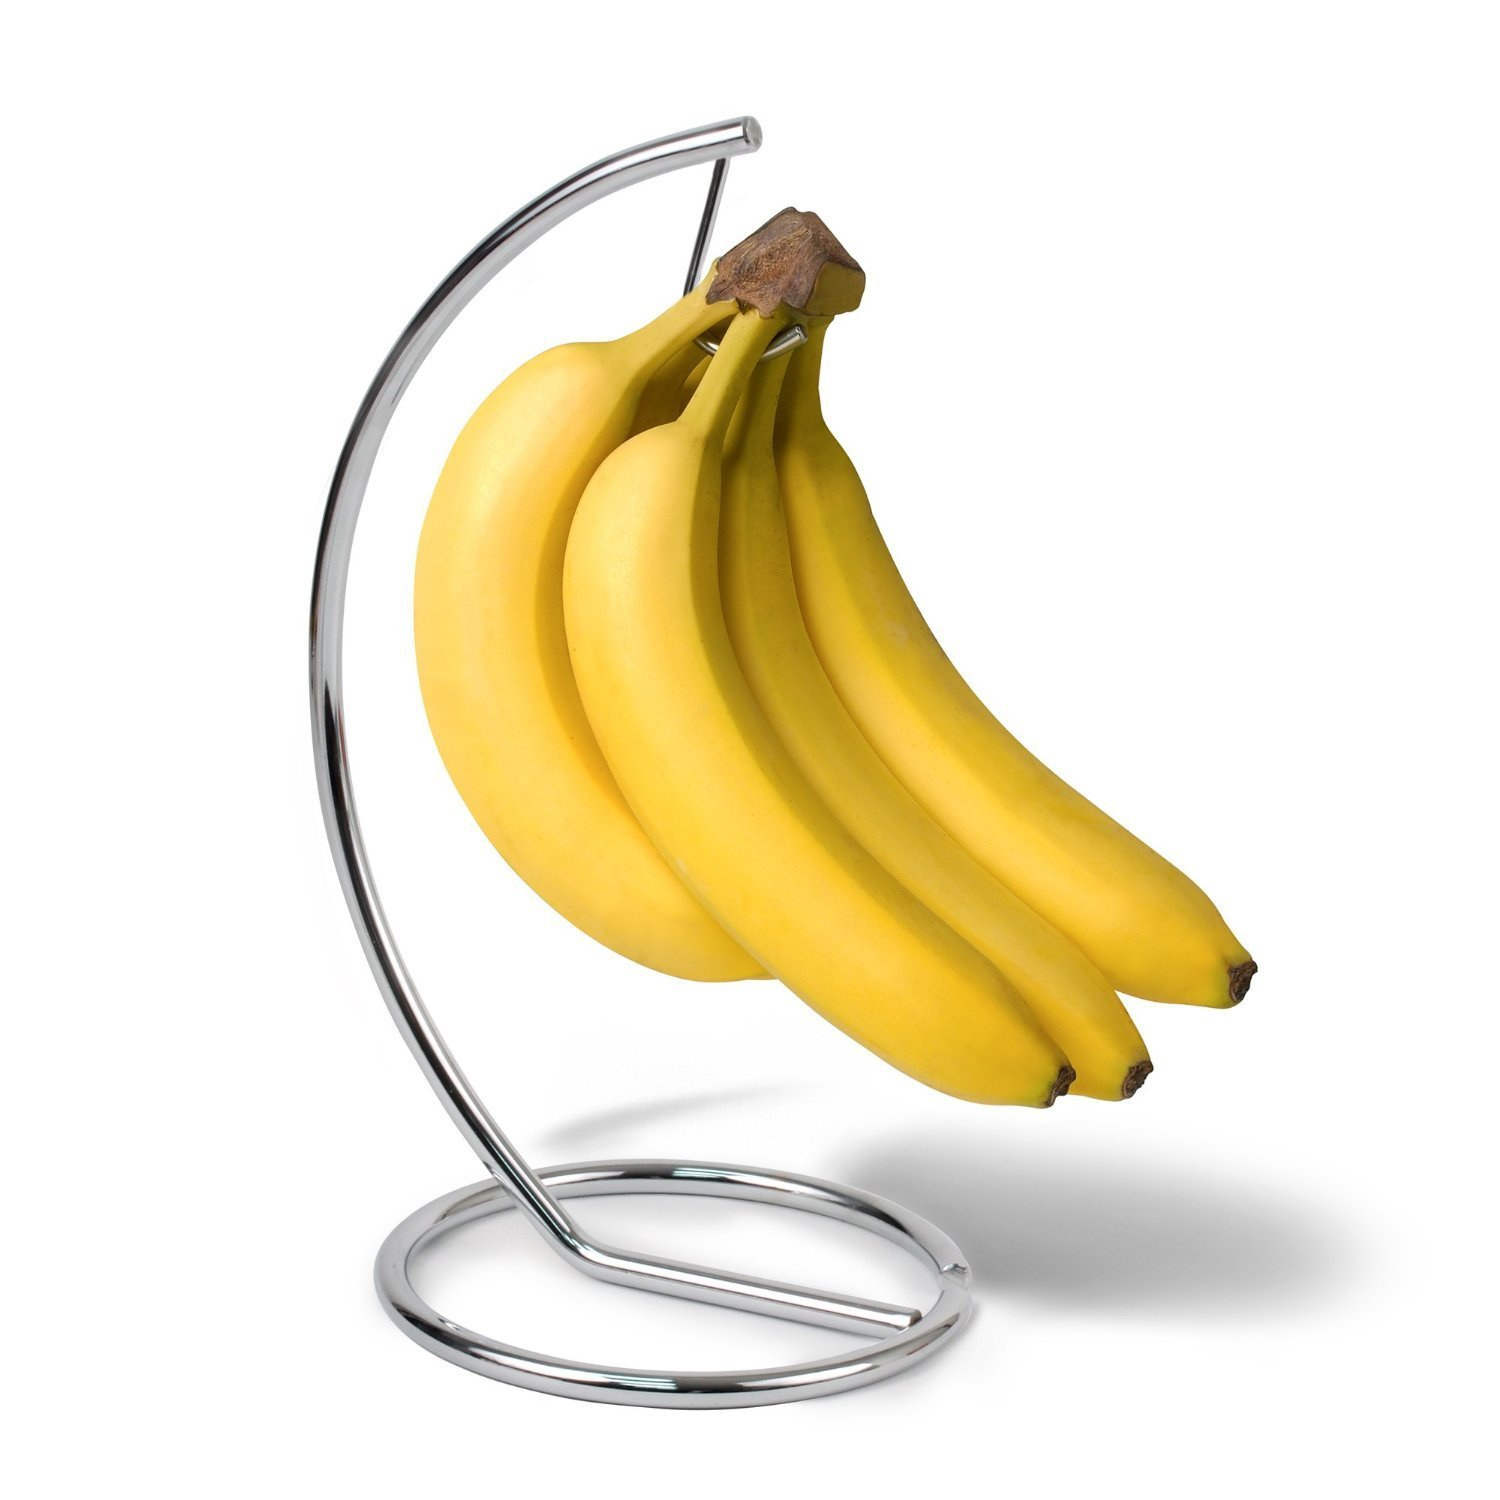 Spectrum Diversified 42978 Euro Banana Holder